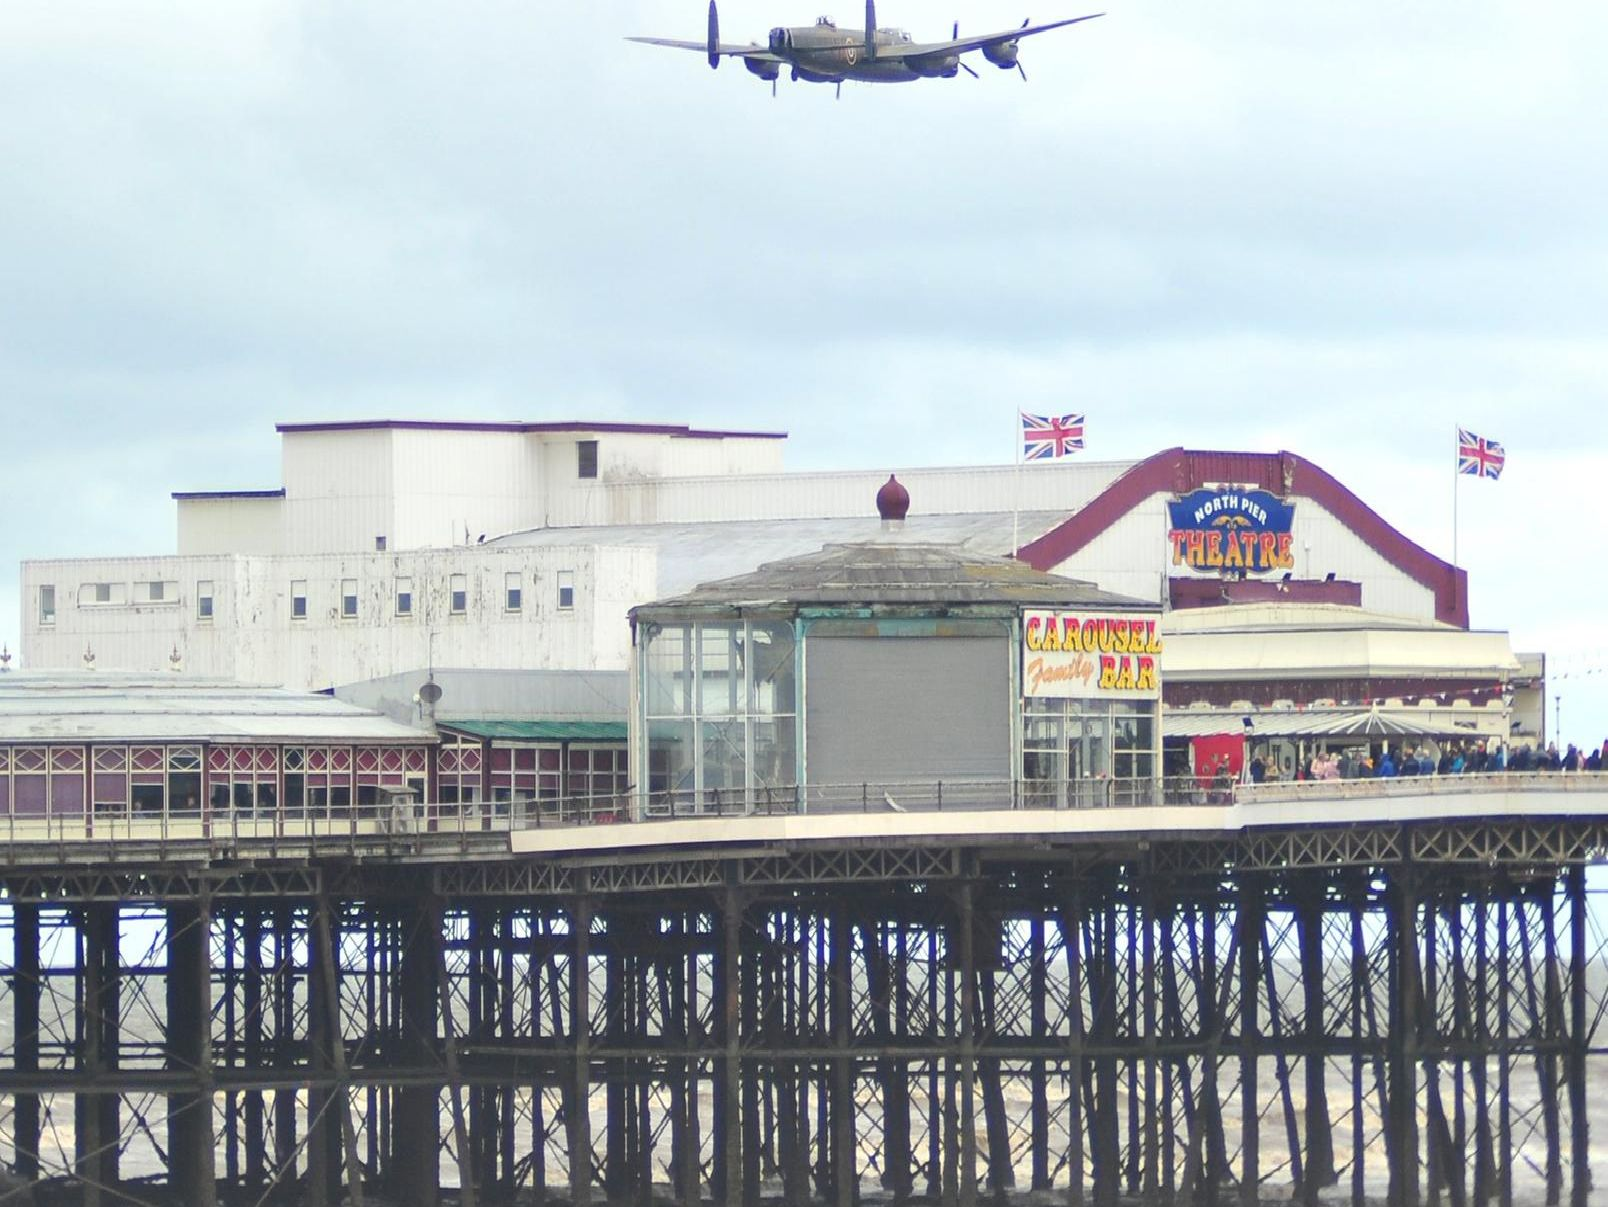 The Lancaster Bomber during the Battle of Britain Memorial Flight at Blackpool Air Show